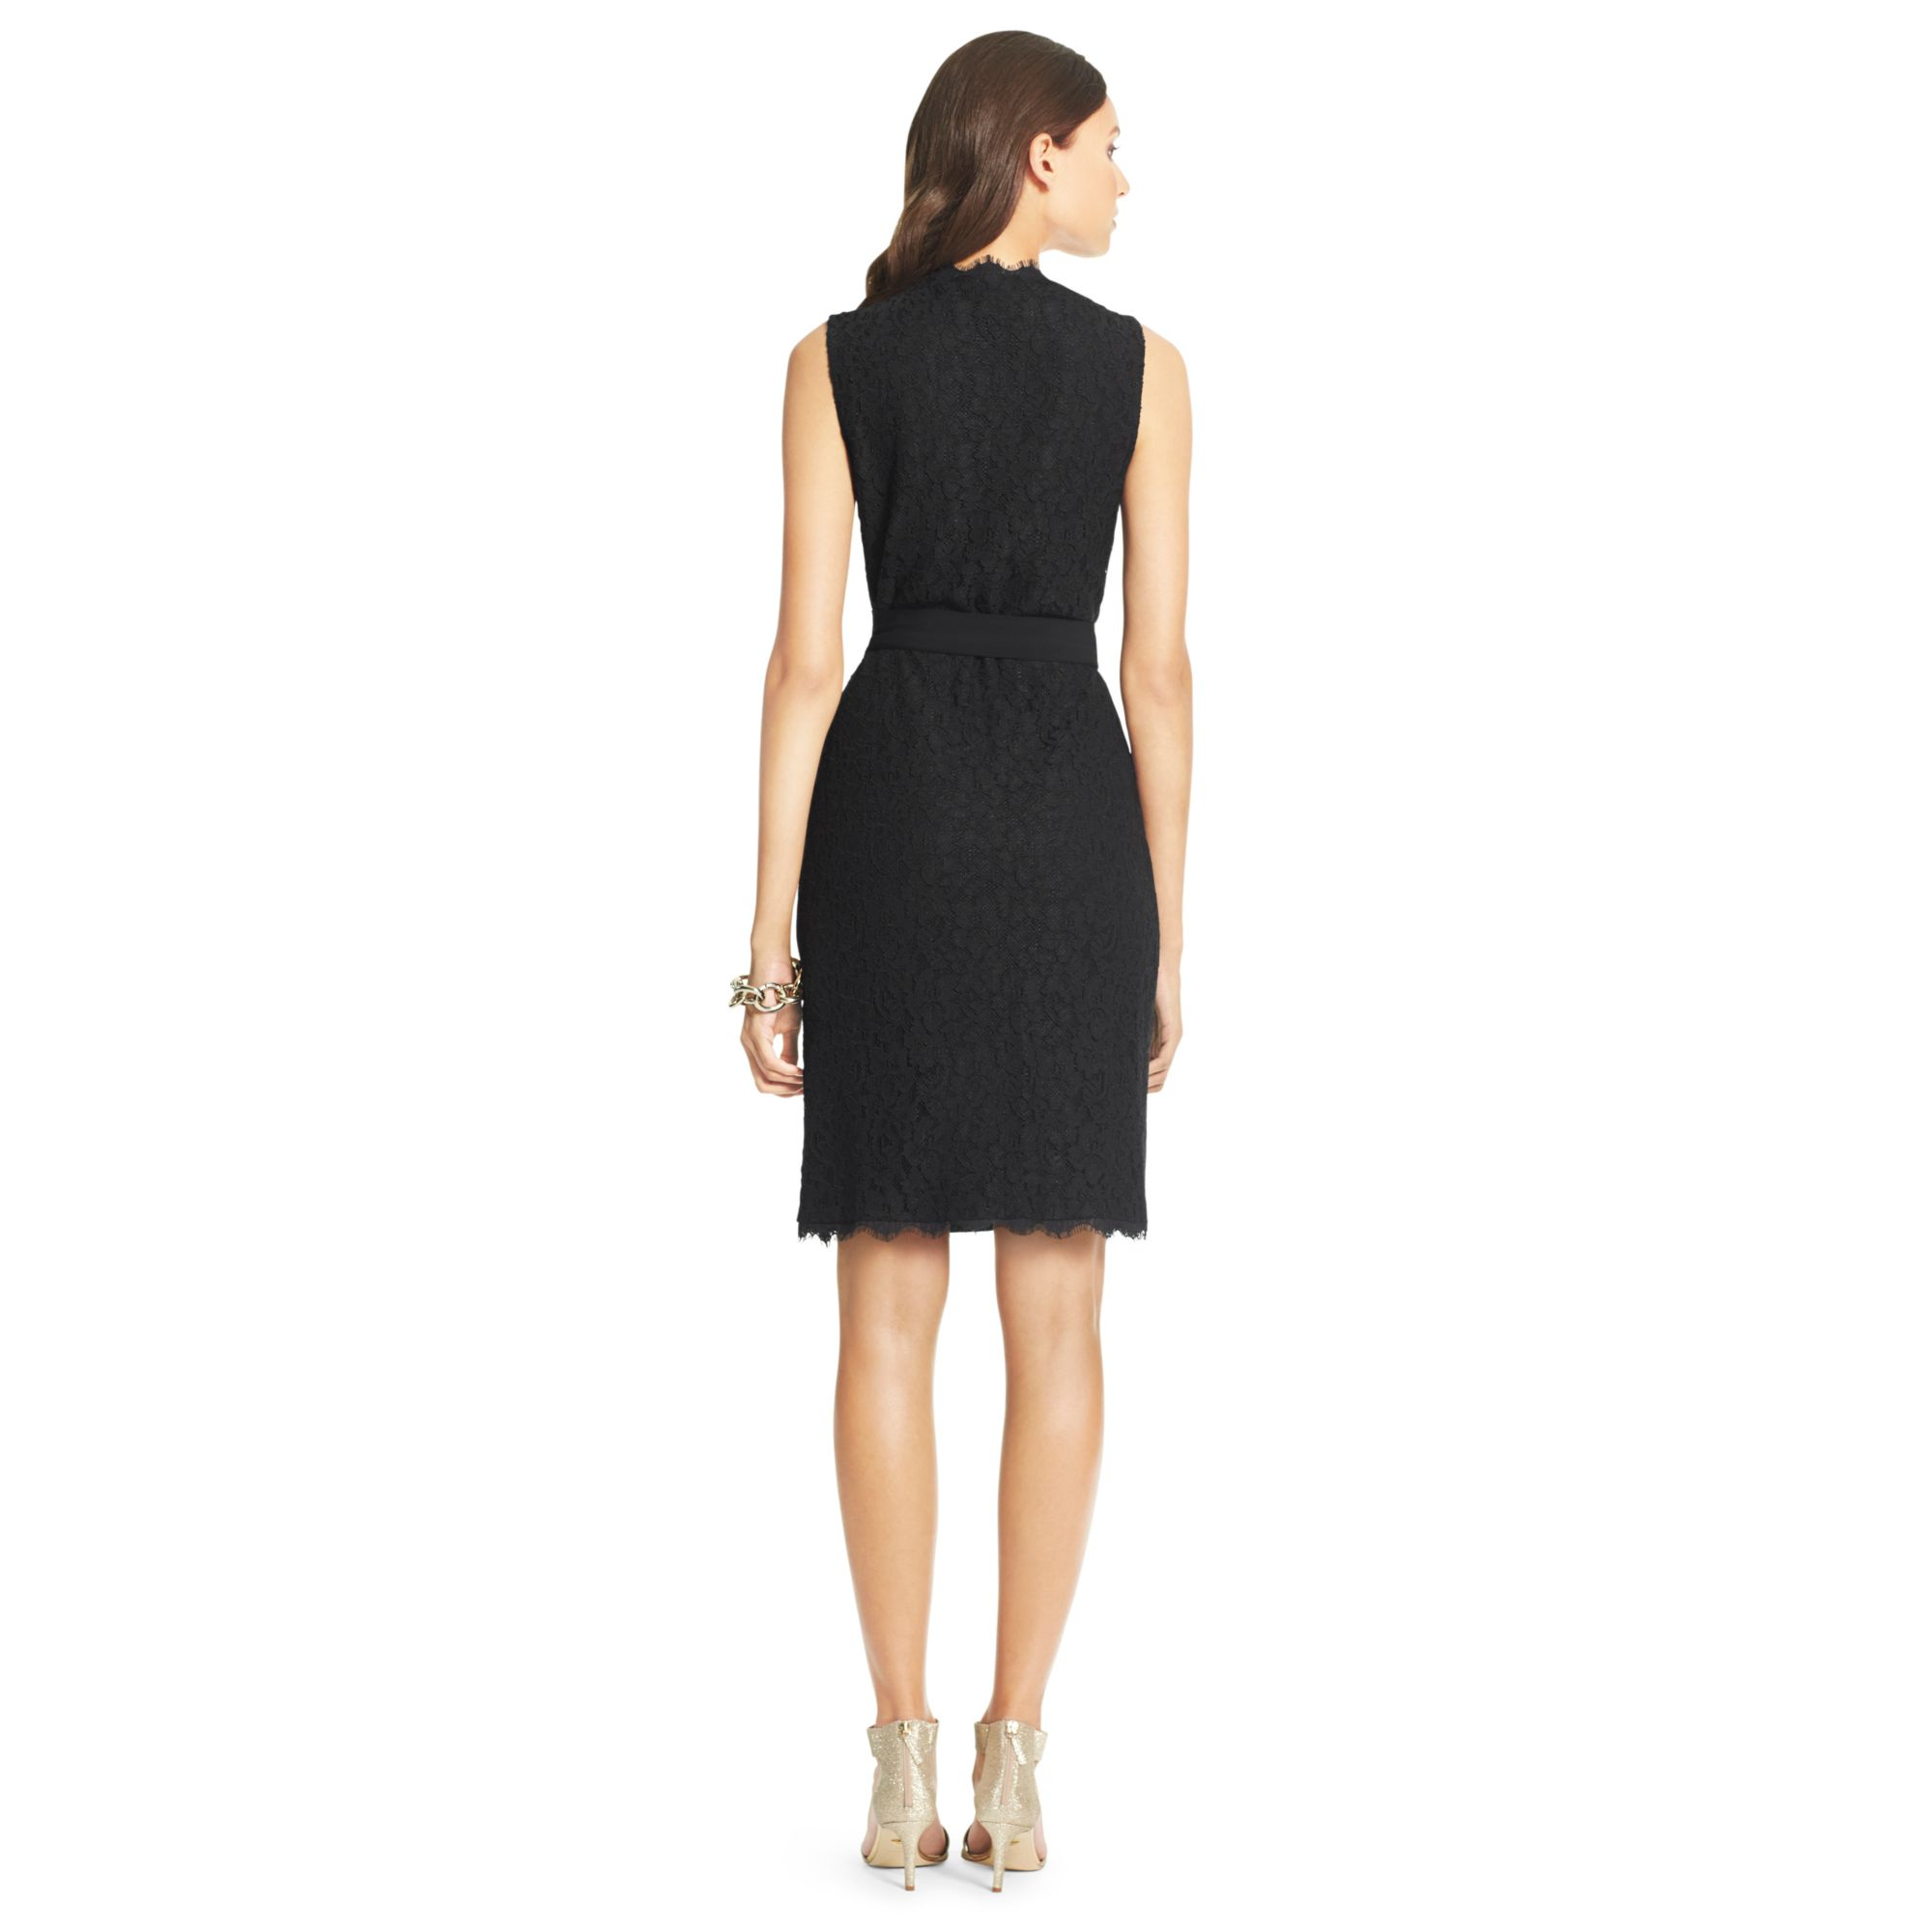 Diane von furstenberg dvf julianna two lace wrap dress in for Diane von furstenberg clothes